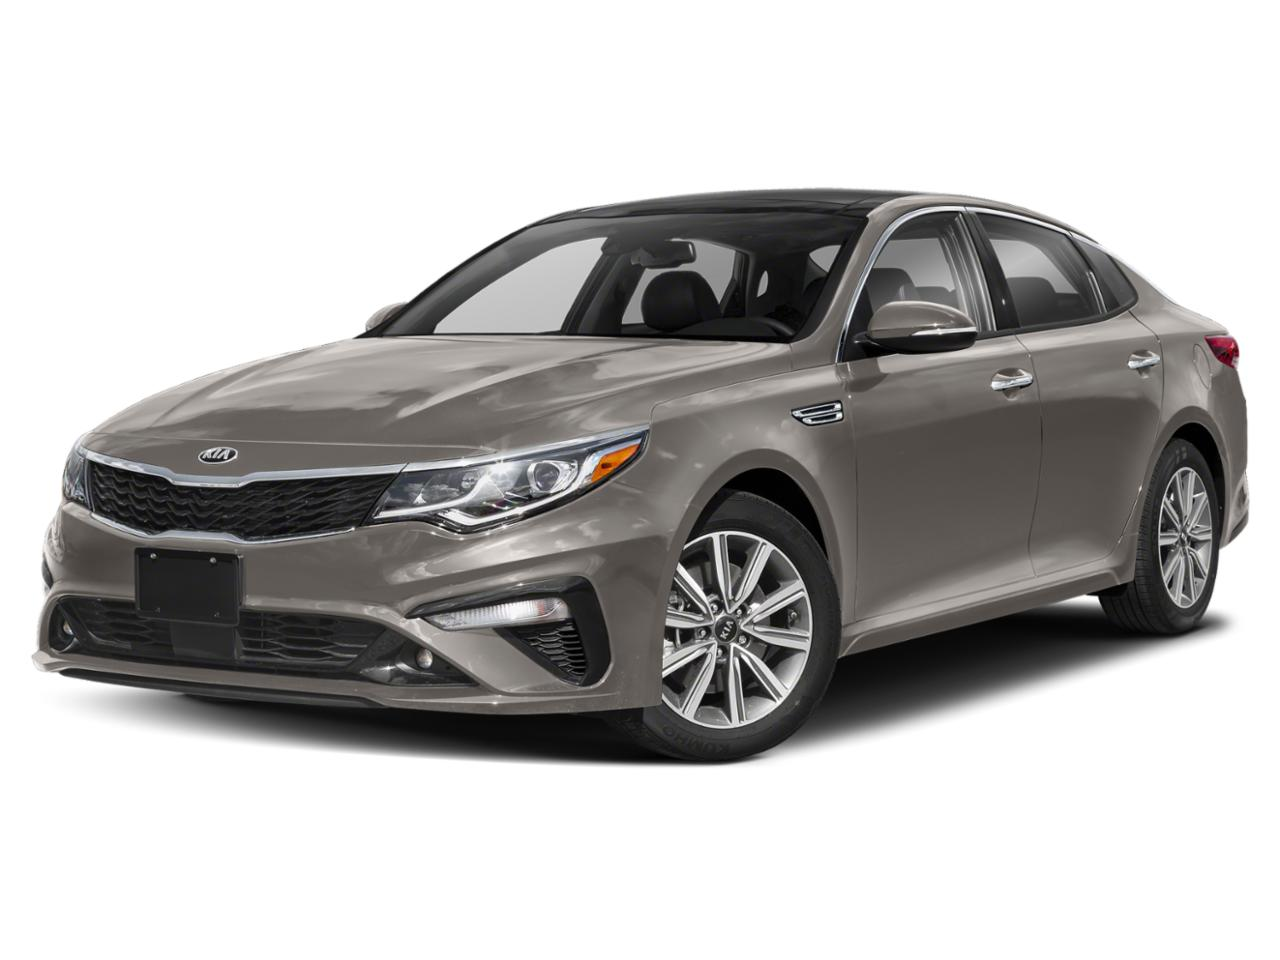 2019 Kia Optima Vehicle Photo in Smyrna, GA 30080